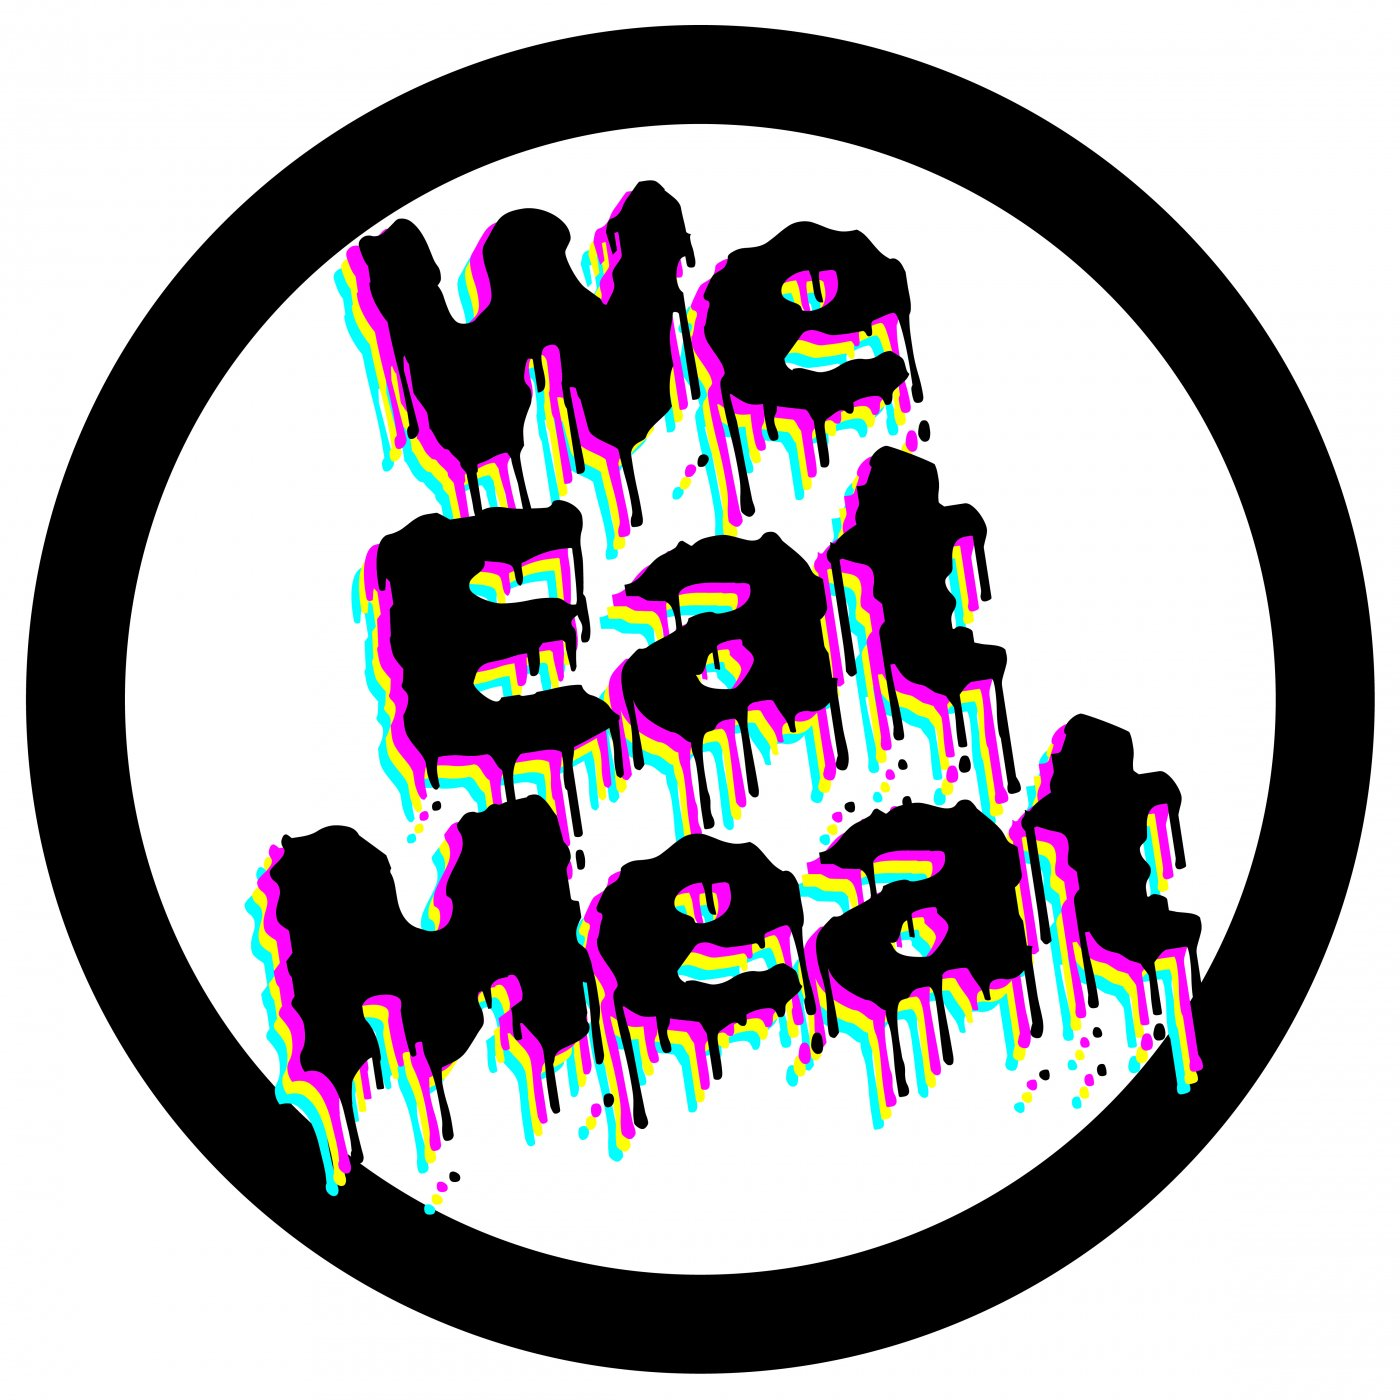 88893-we-eat-meat-sam-01092010-1908.jpg